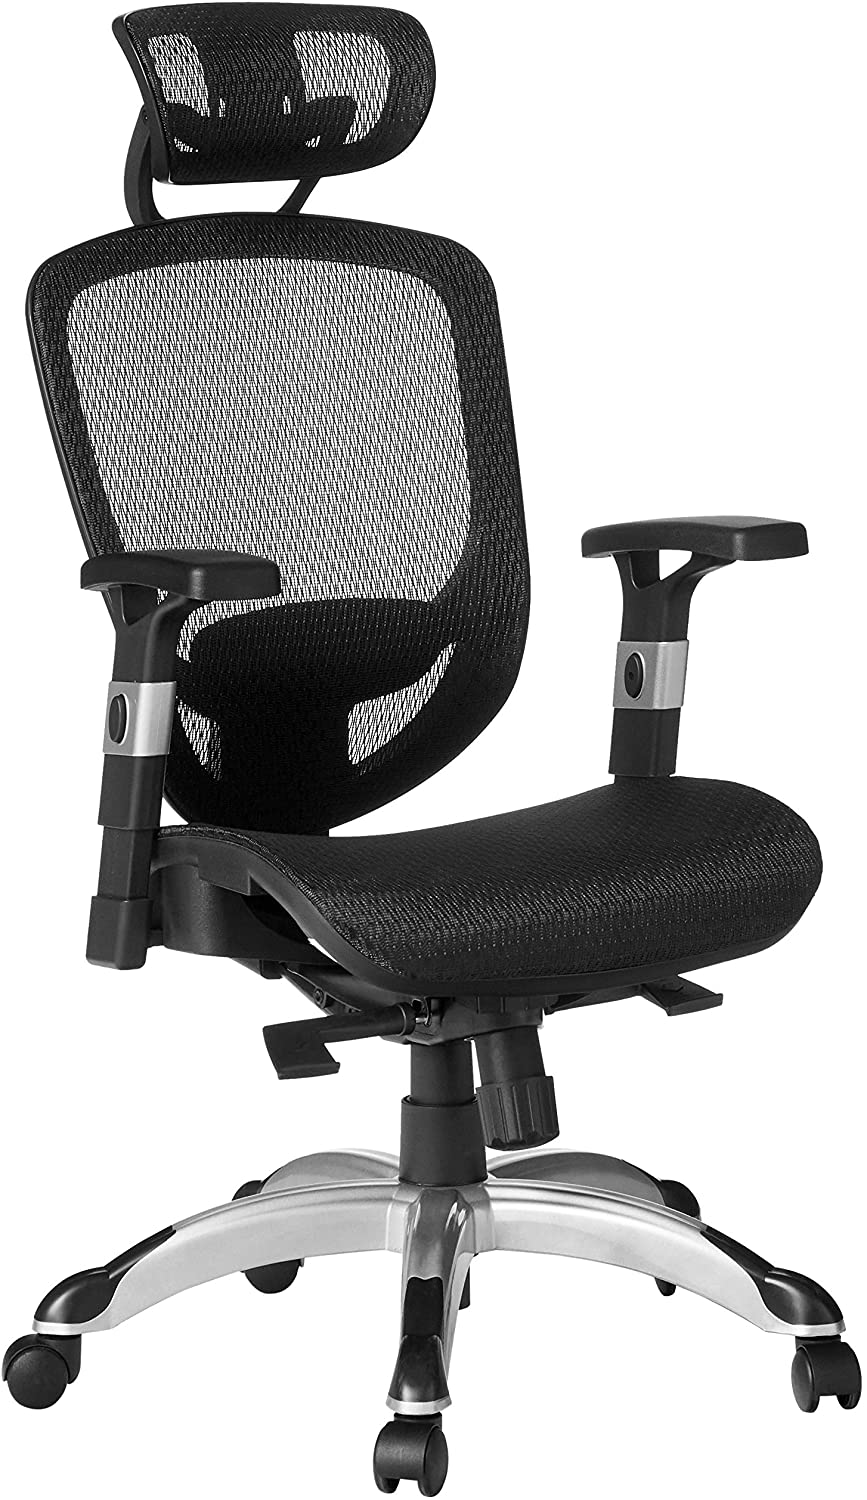 Amazon Com Staples Hyken Technical Task Black Sold As 1 Each Adjustable Breathable Mesh Material Provides Lumbar Arm And Head Support Perfect Desk Chair For The Modern Office Furniture Decor